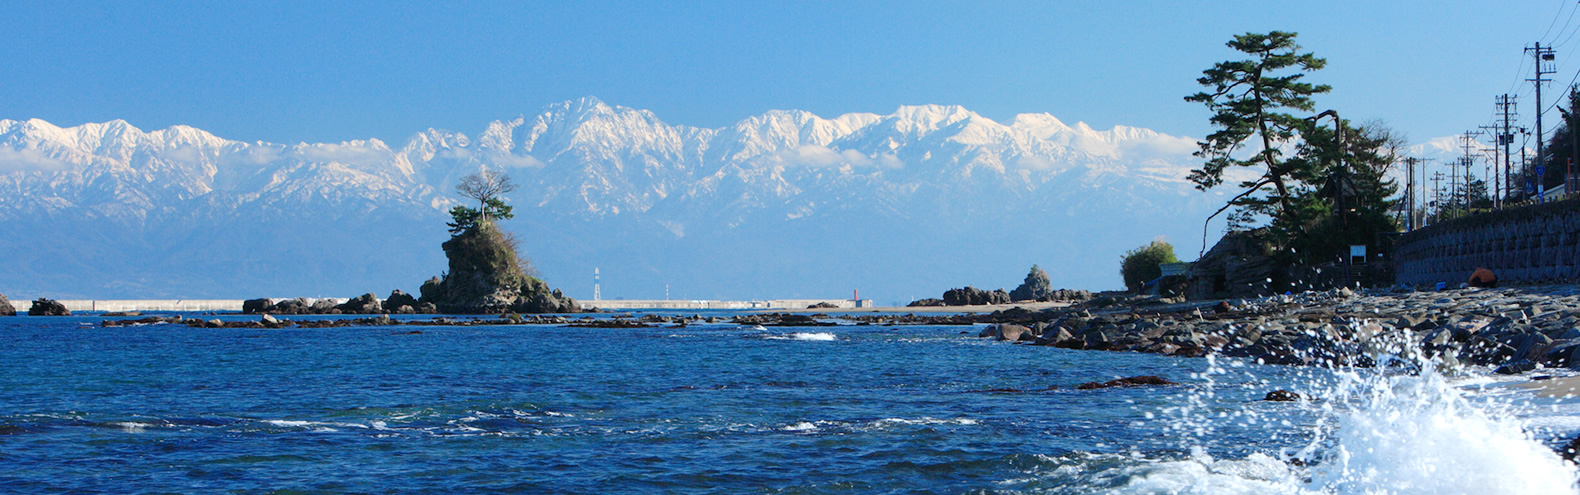 Tateyama Mountain Range from Amaharashi Beach